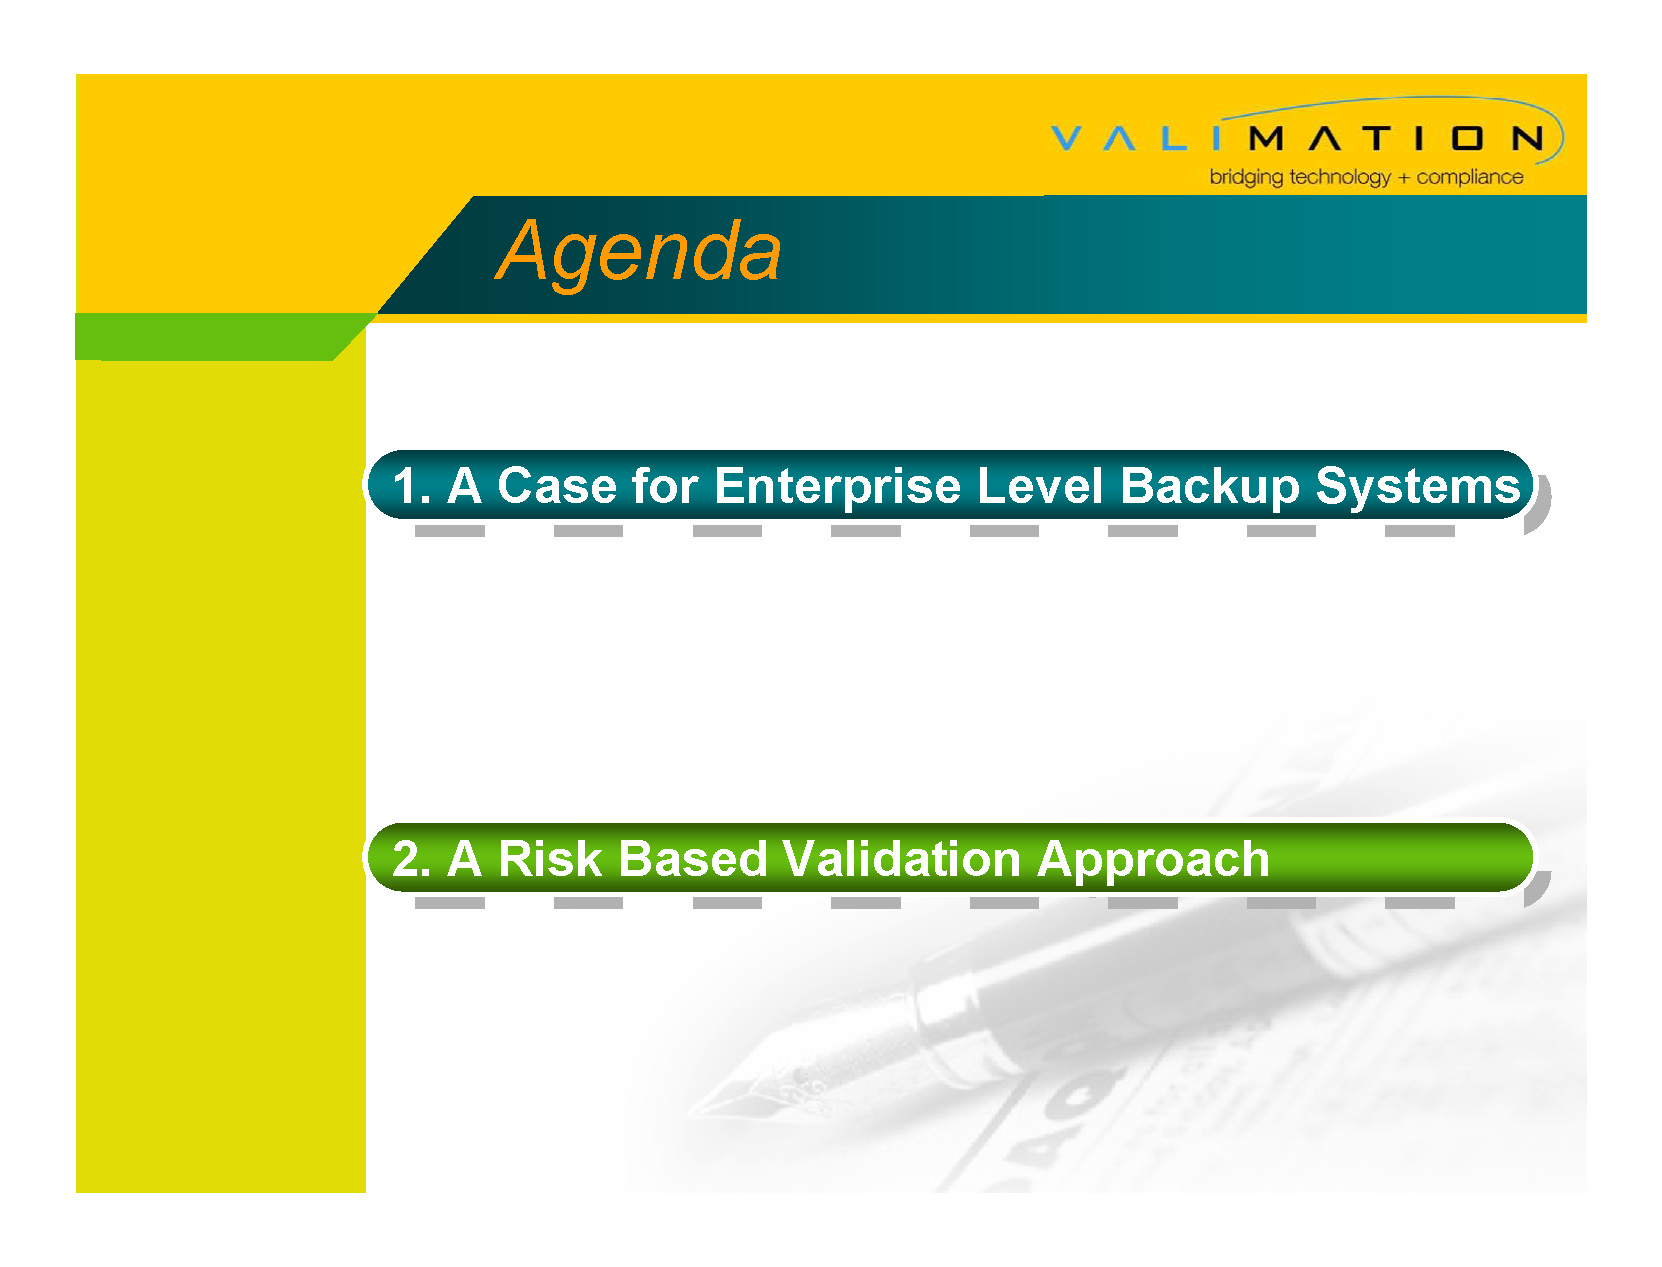 Validating an Enterprise Backup System by ValiMation_Page_02.png